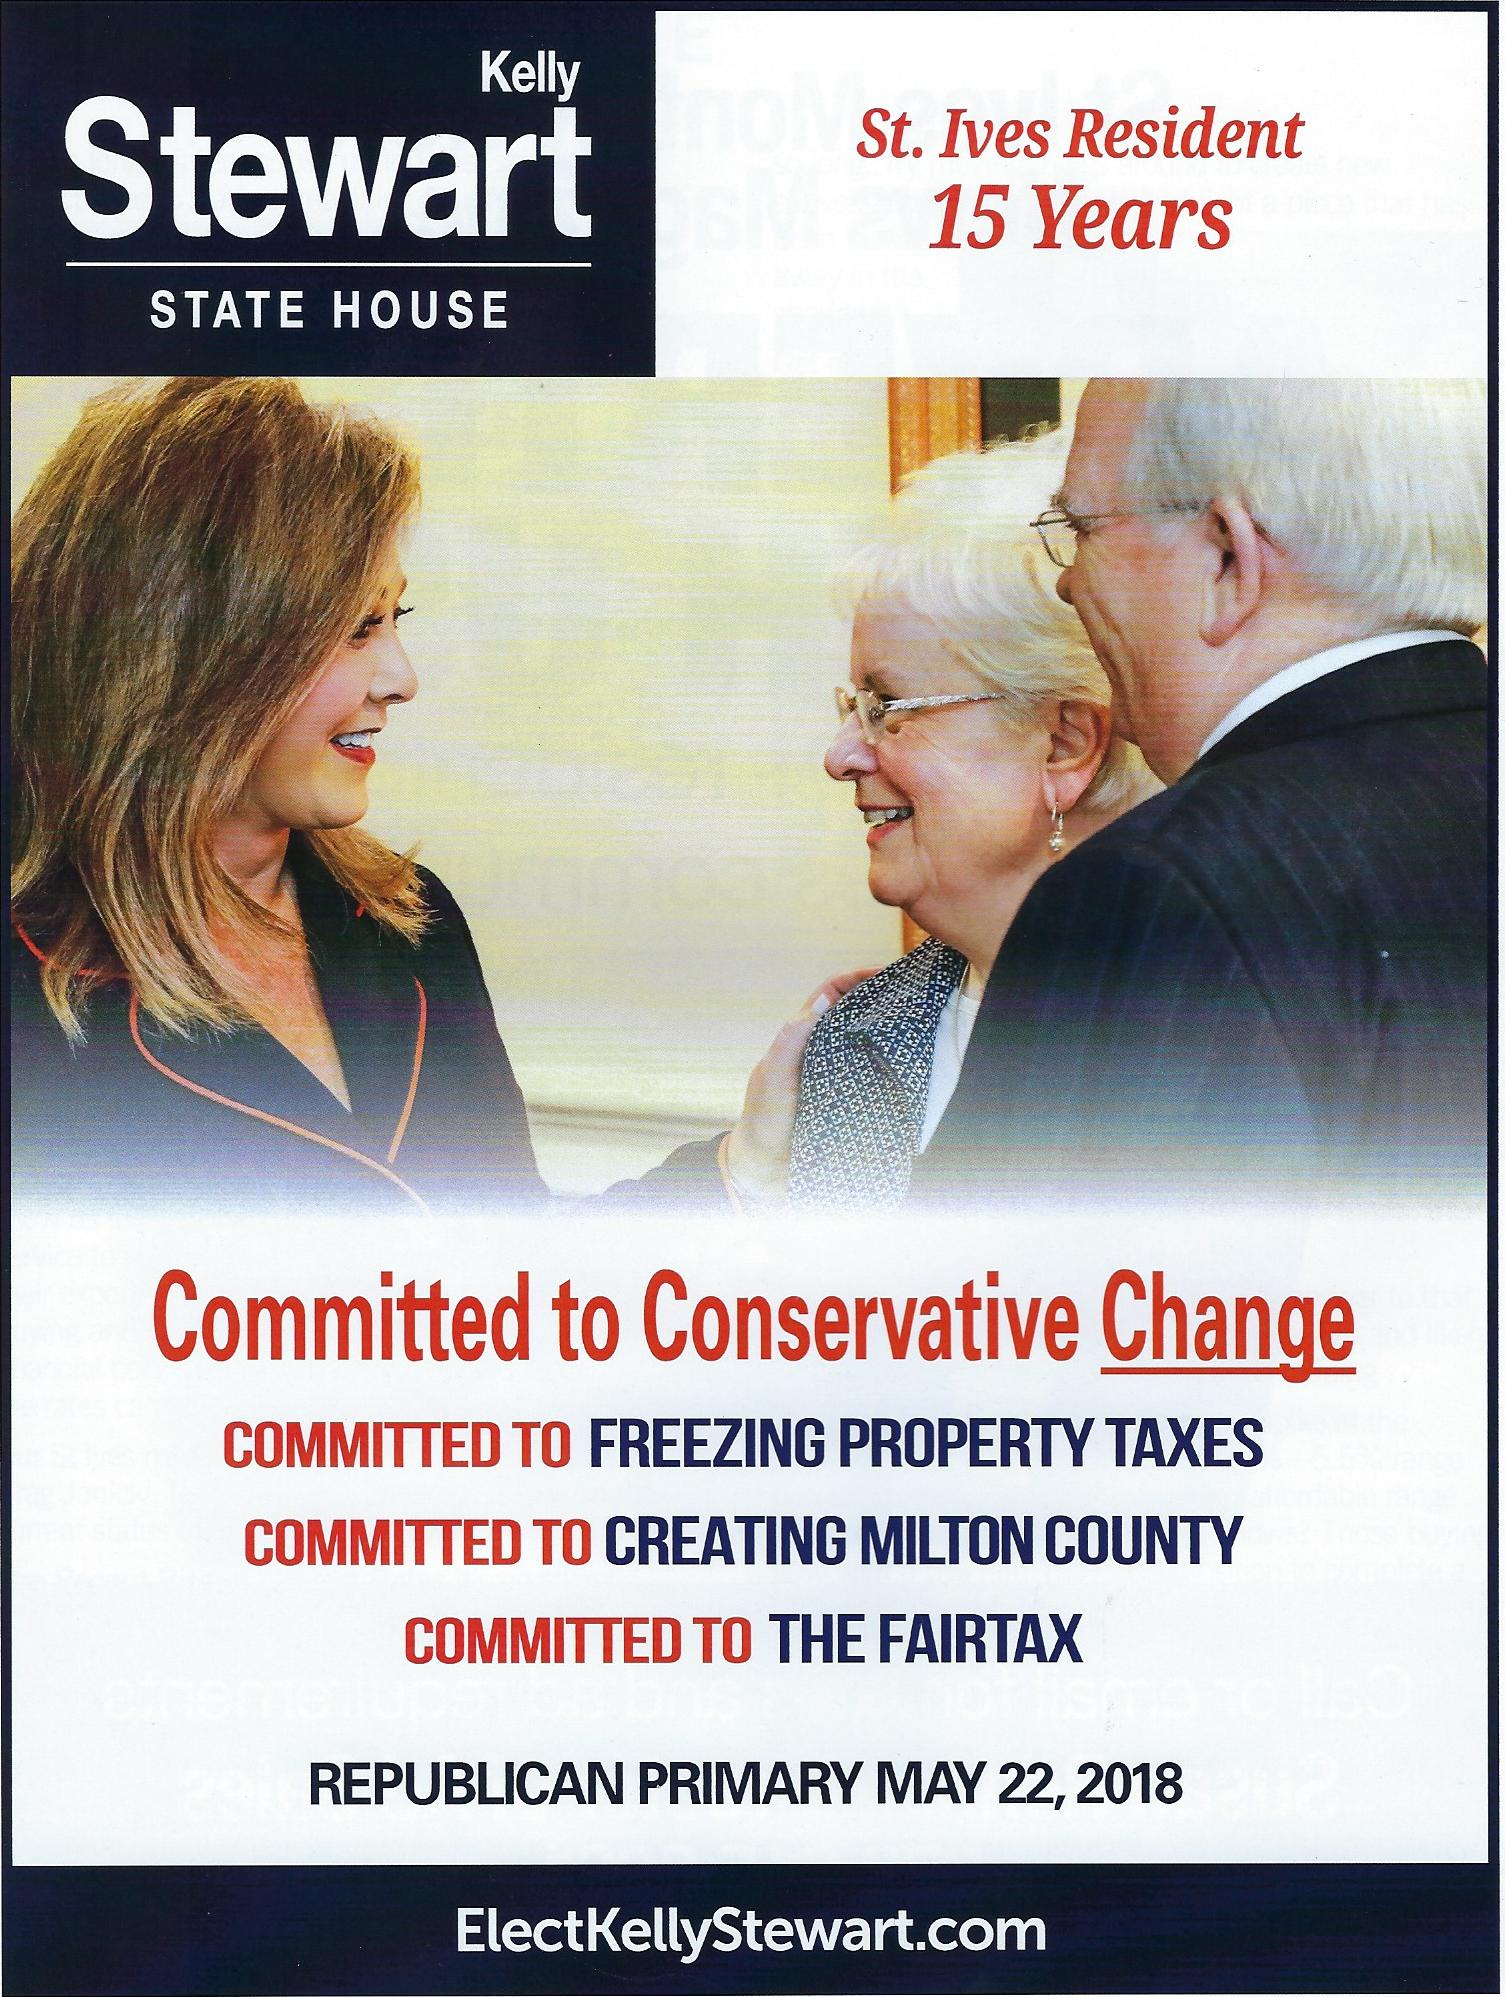 Kelly Stewart's election material explicitly states a commitment to freezing property taxes